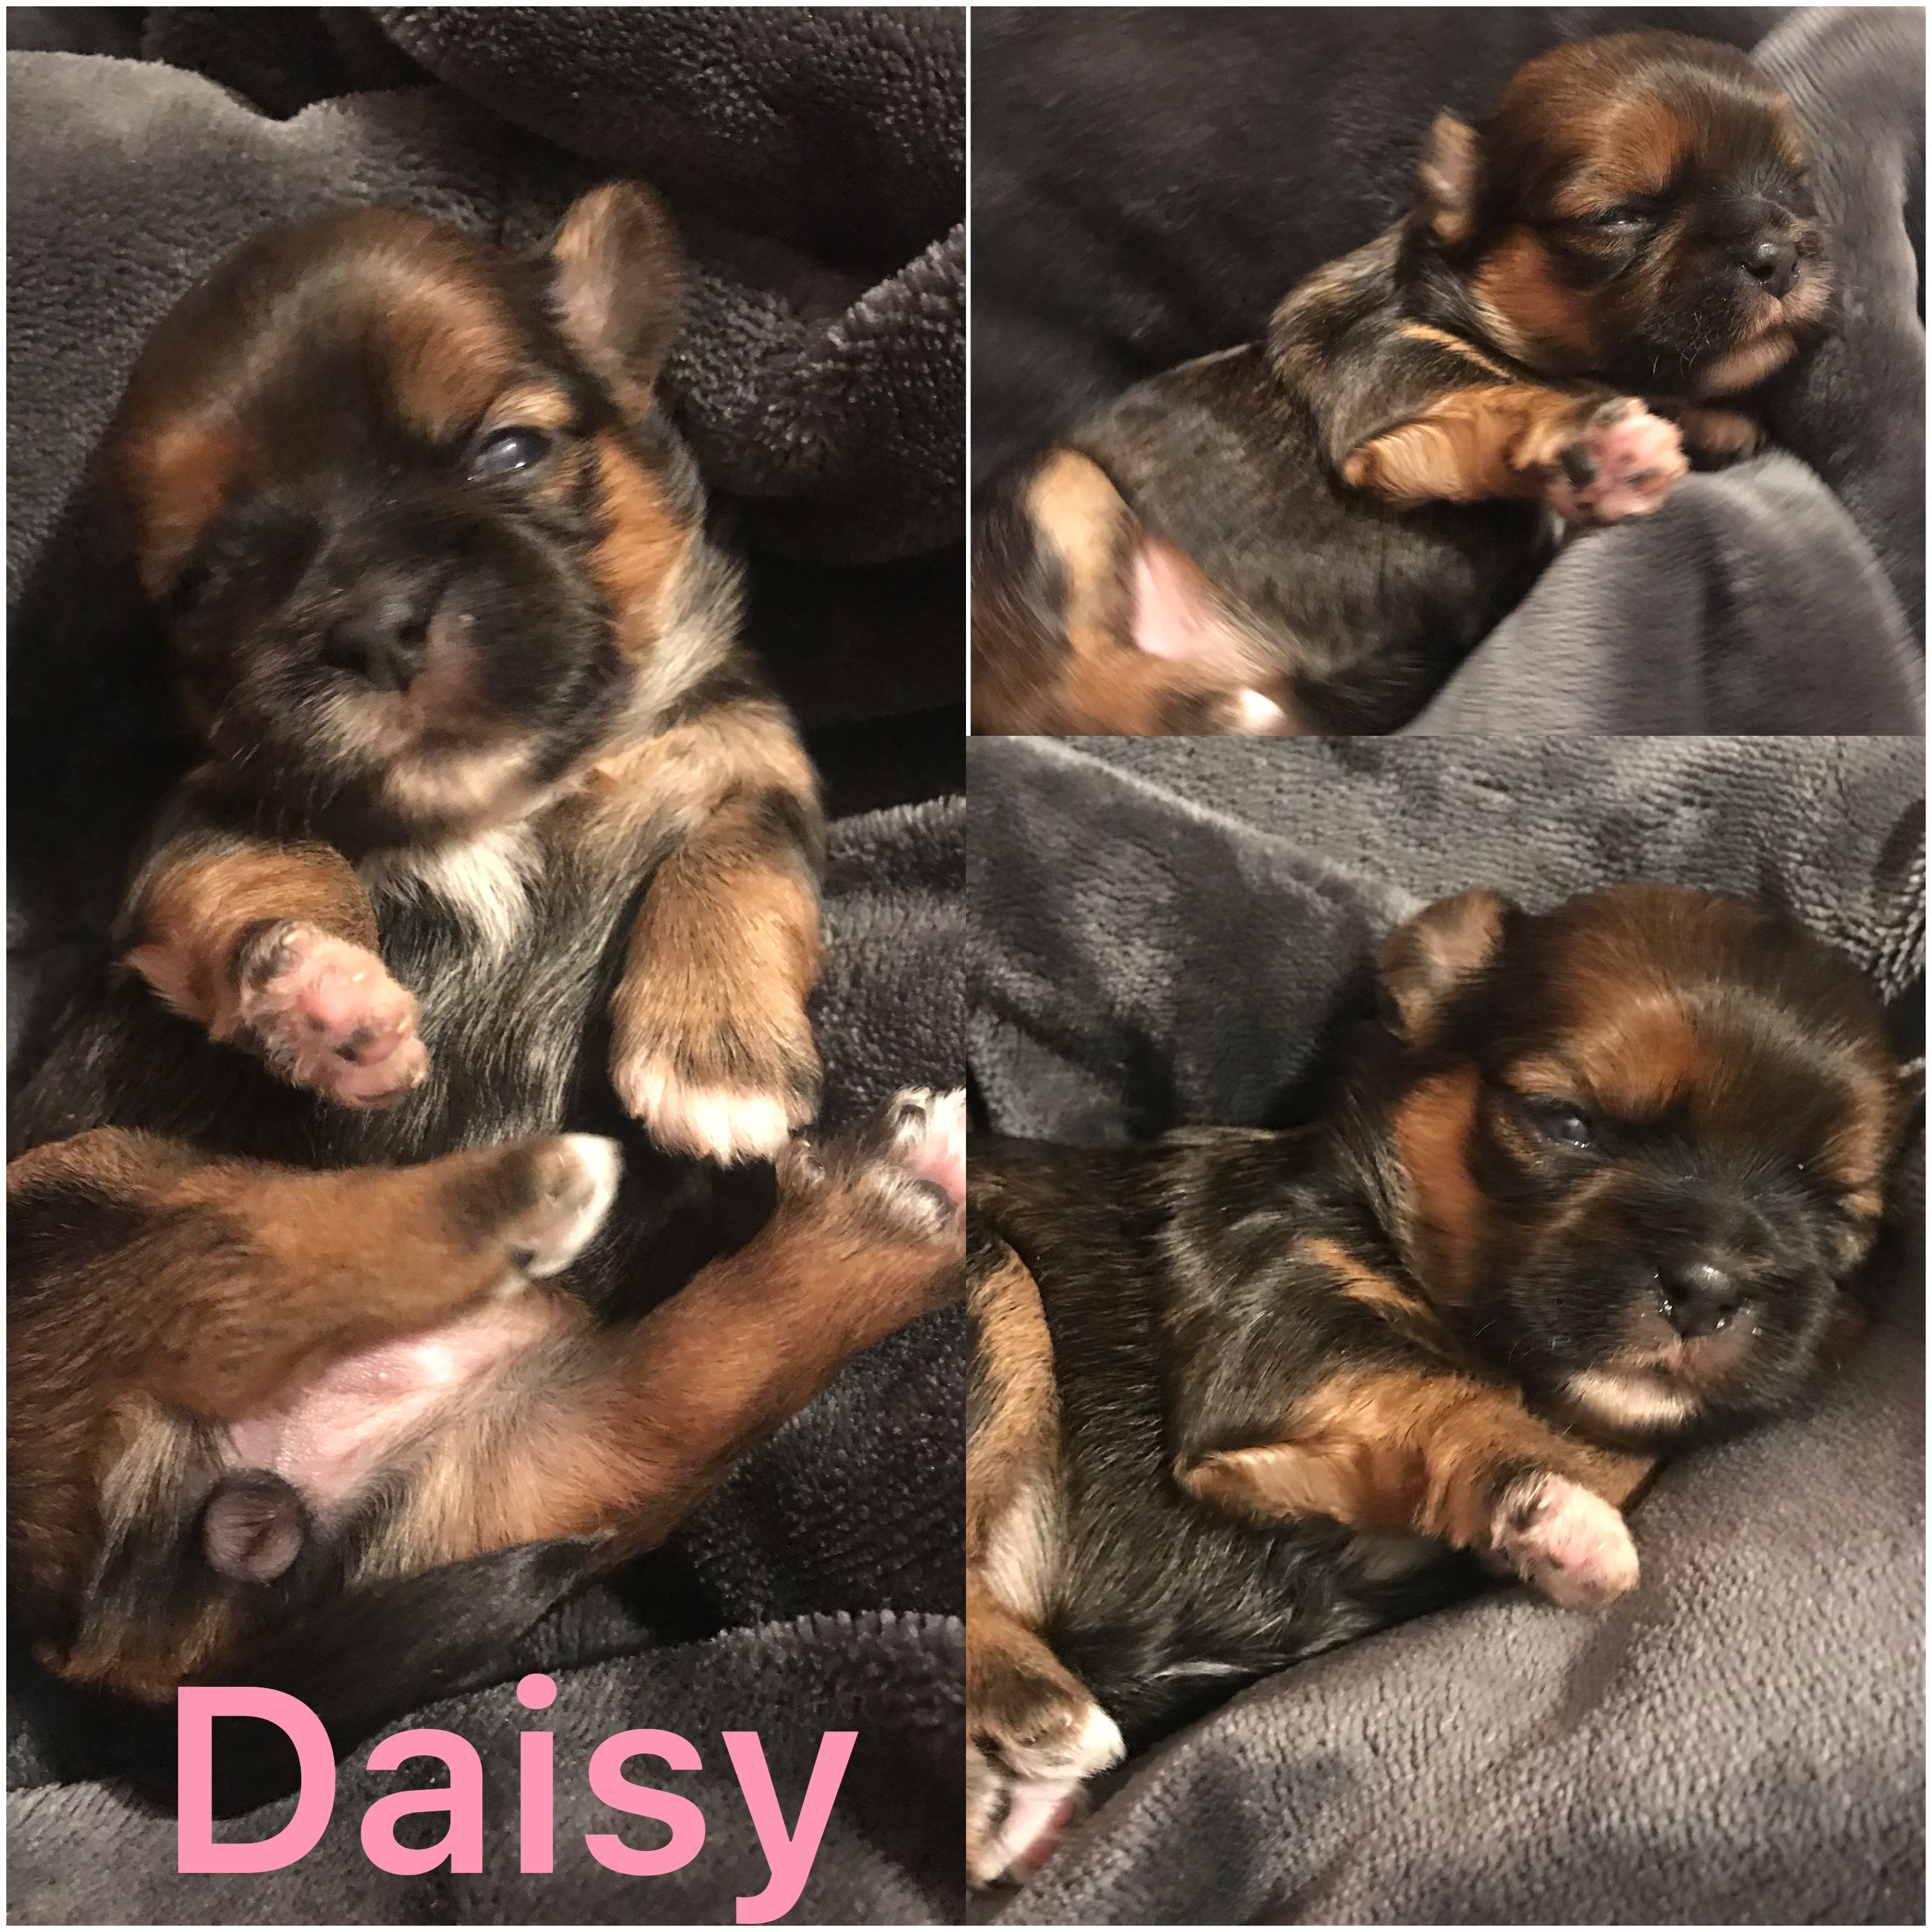 Daisy IS ADOPTED BY ANDREA!